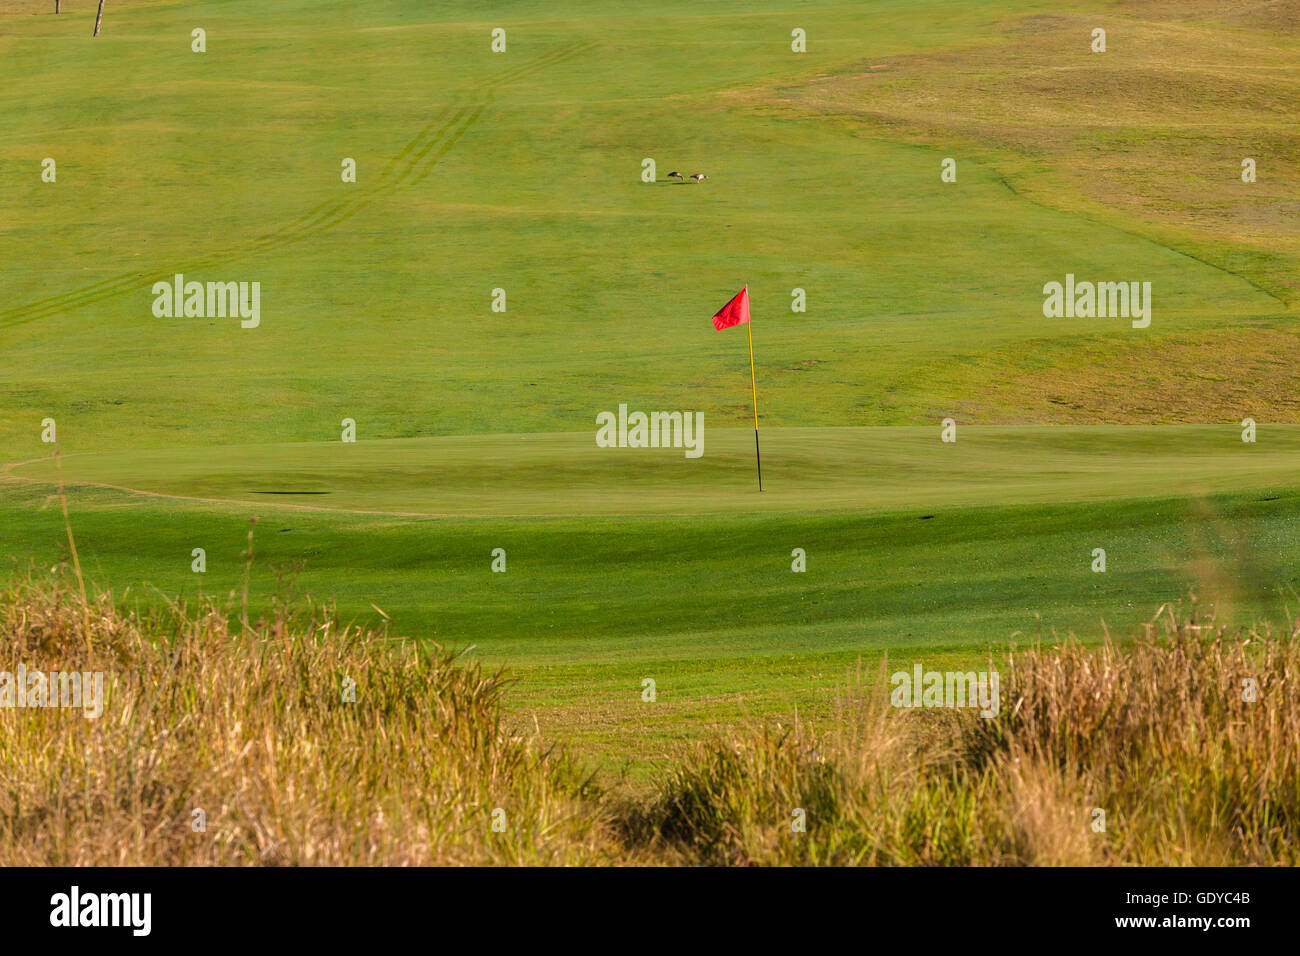 Golf green hole flag stick with fairway landscape - Stock Image